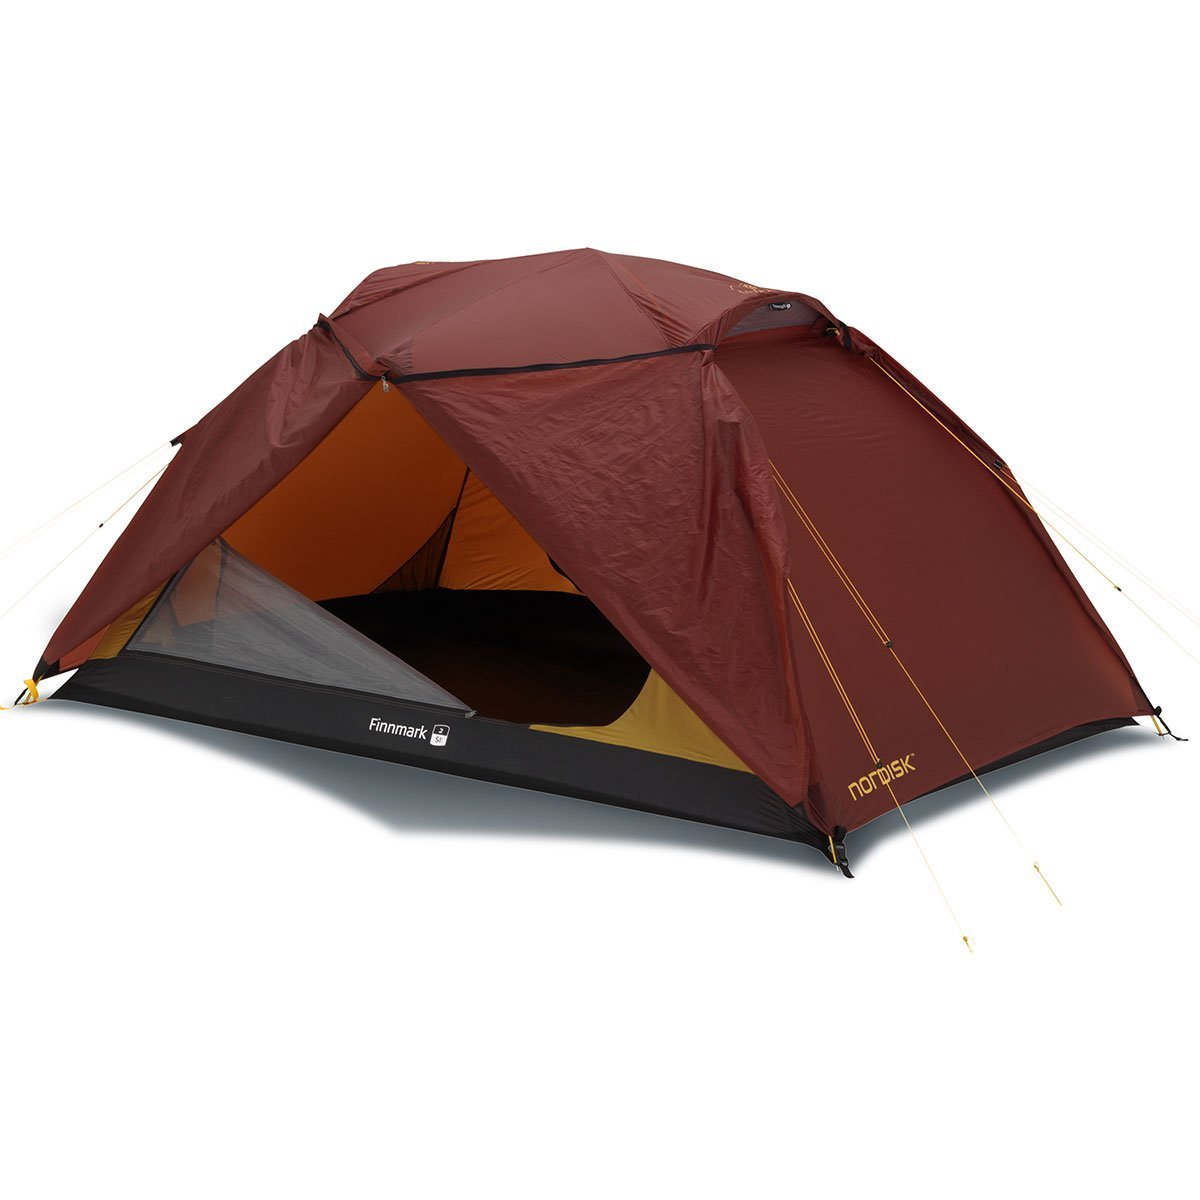 Nordisk | Finnmark 2 SI | 2 Man Dome Tent | Waterproof Dome Tent | Burnt Red